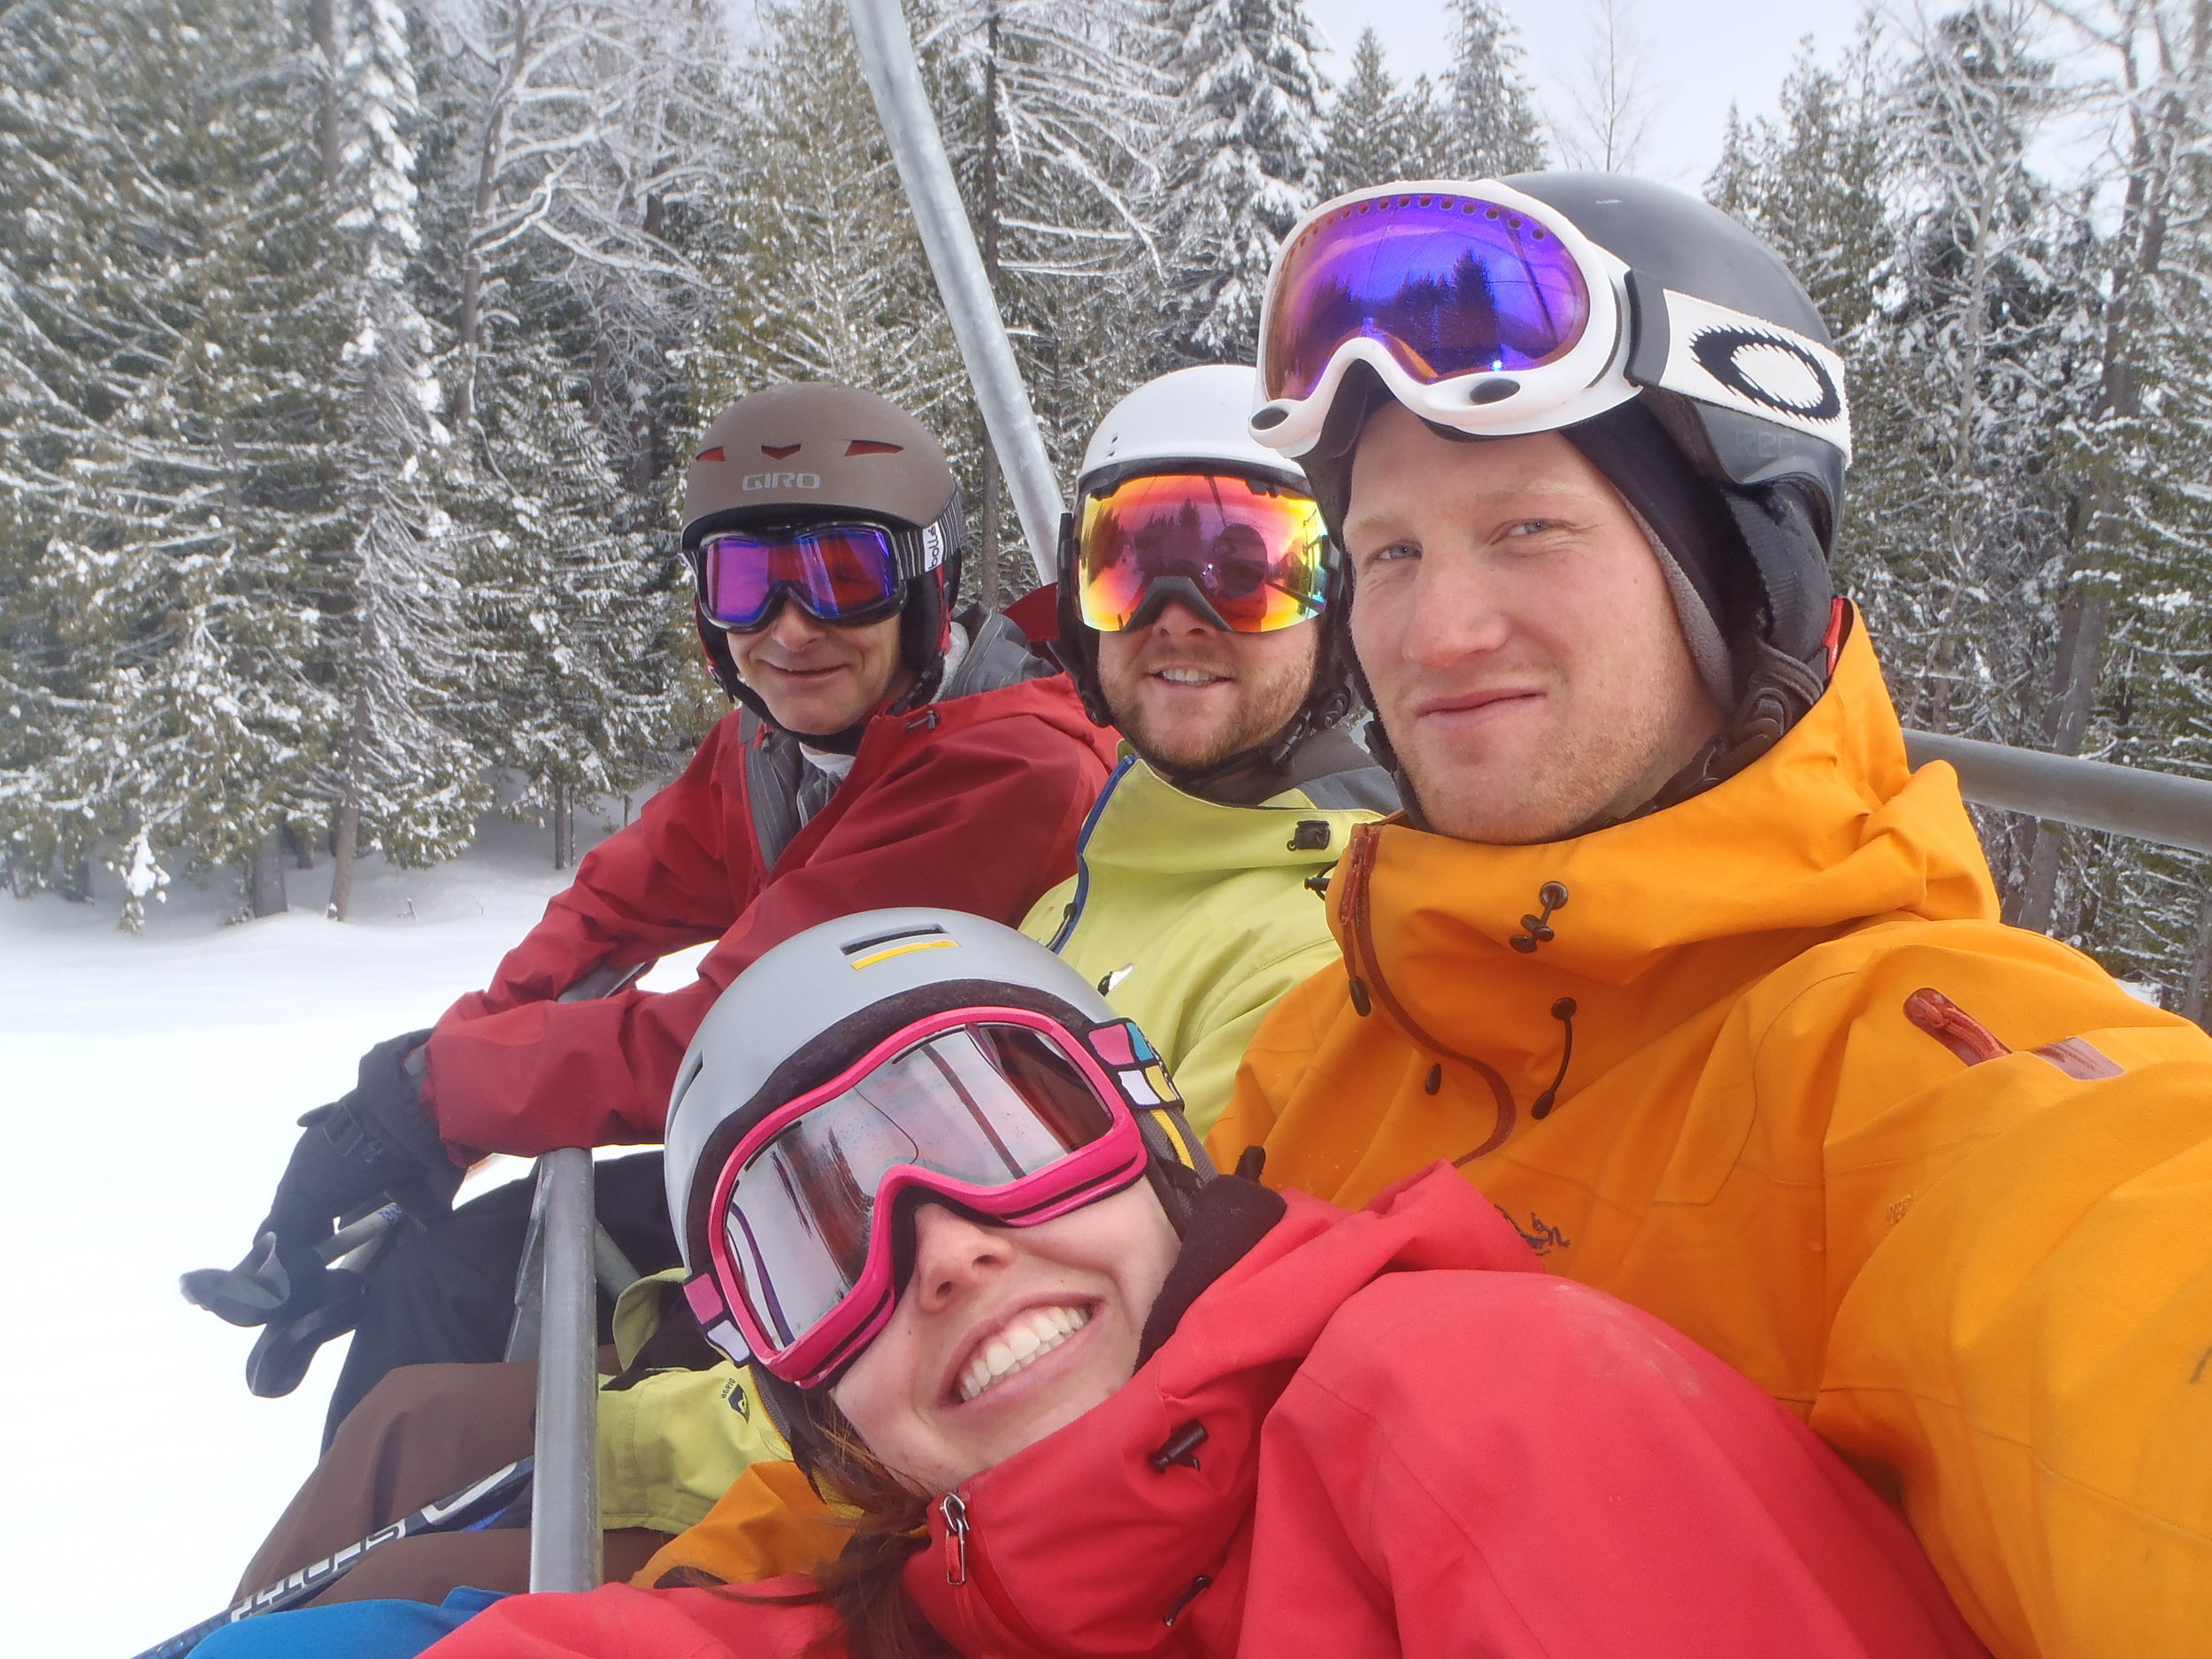 Friends and powder safaris on a ski tour in BC.